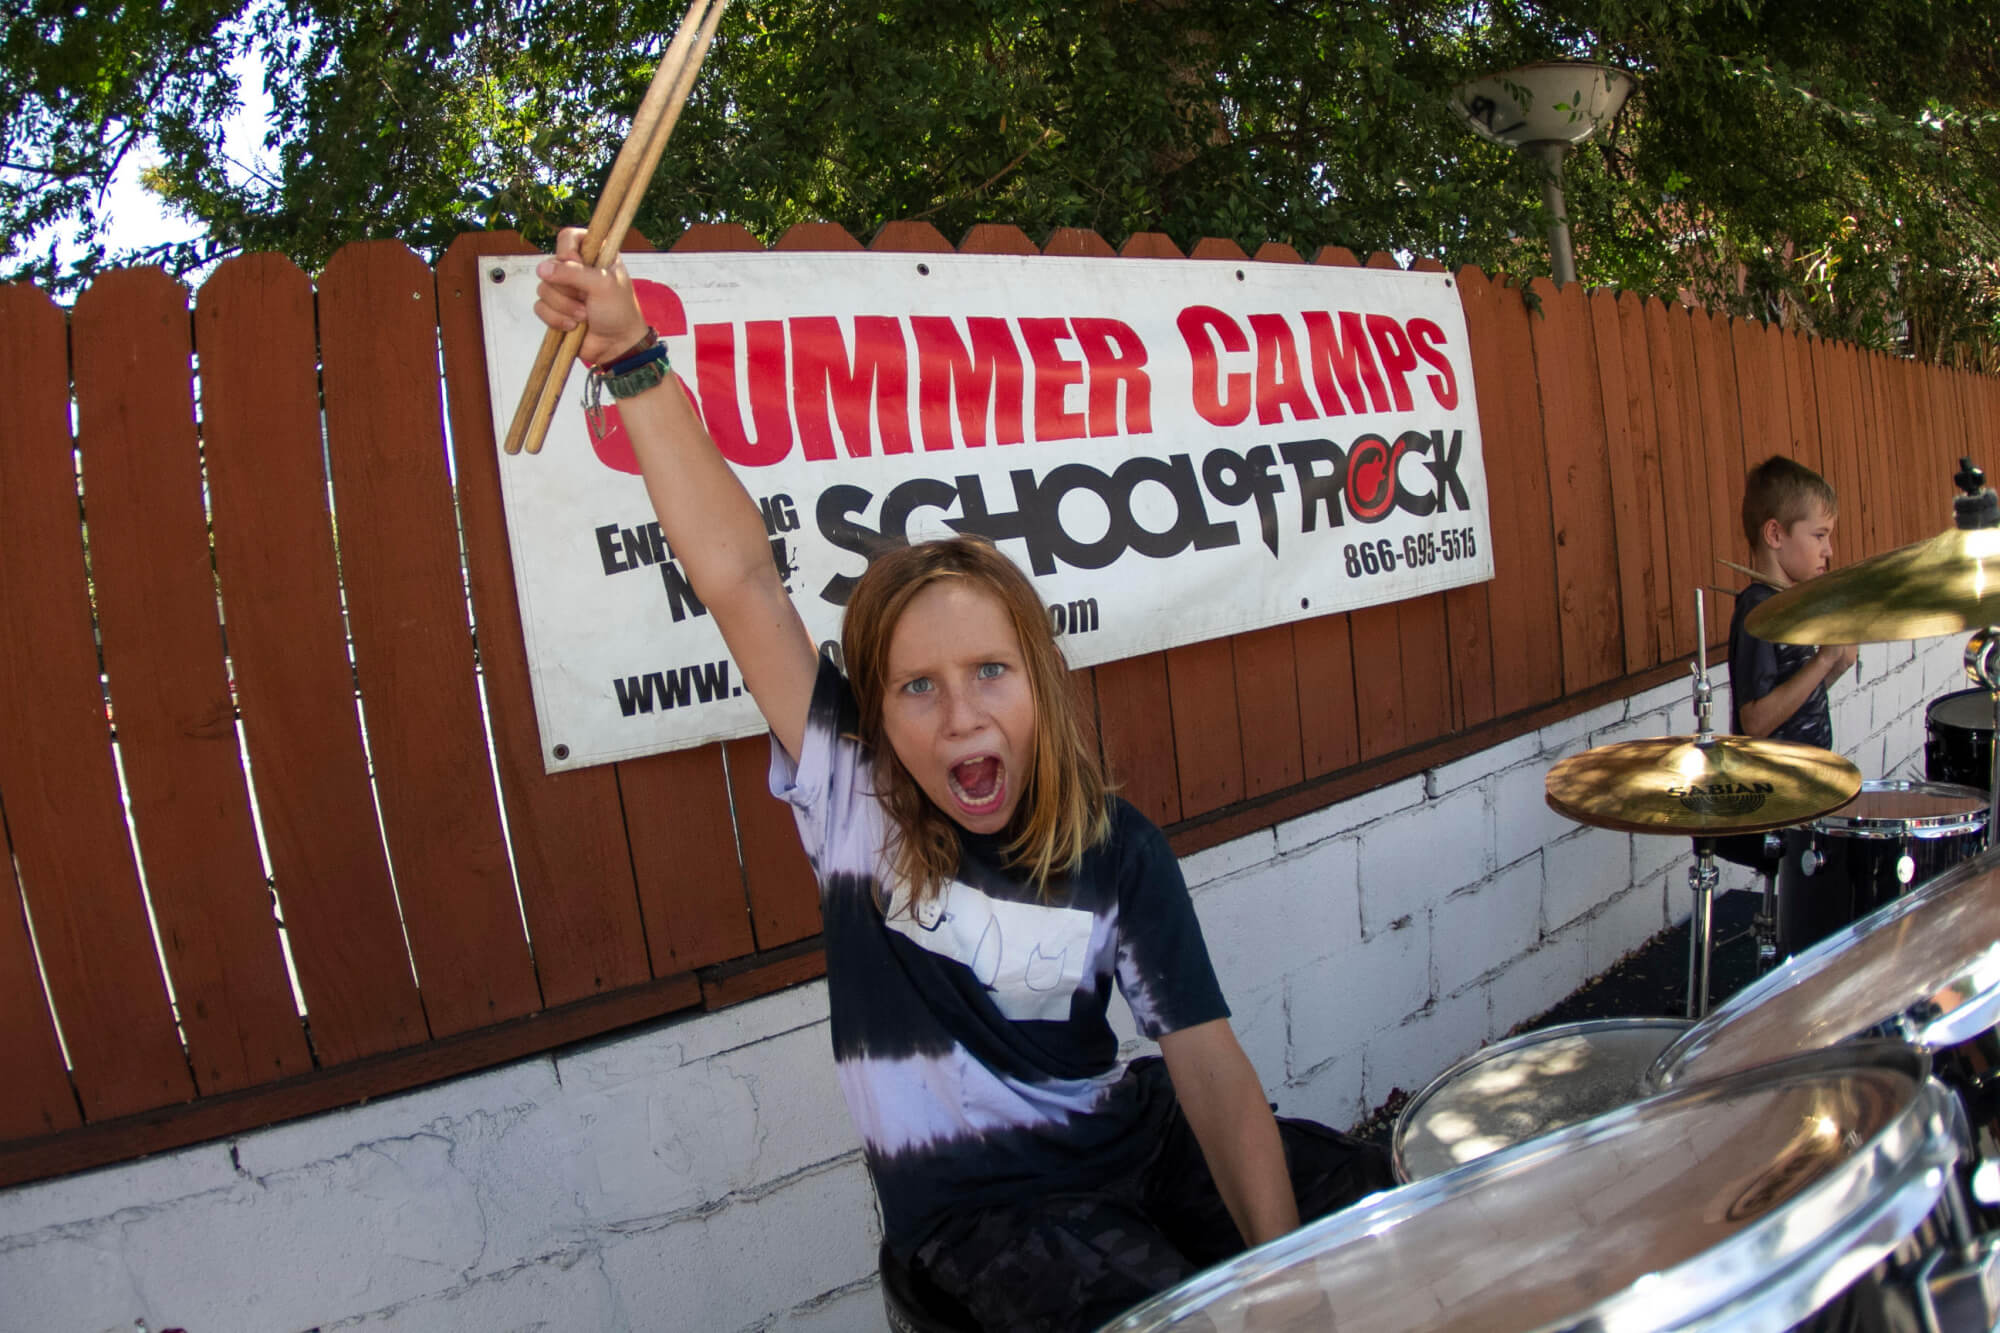 Our summer camps get kids of all skill levels playing together in a band.